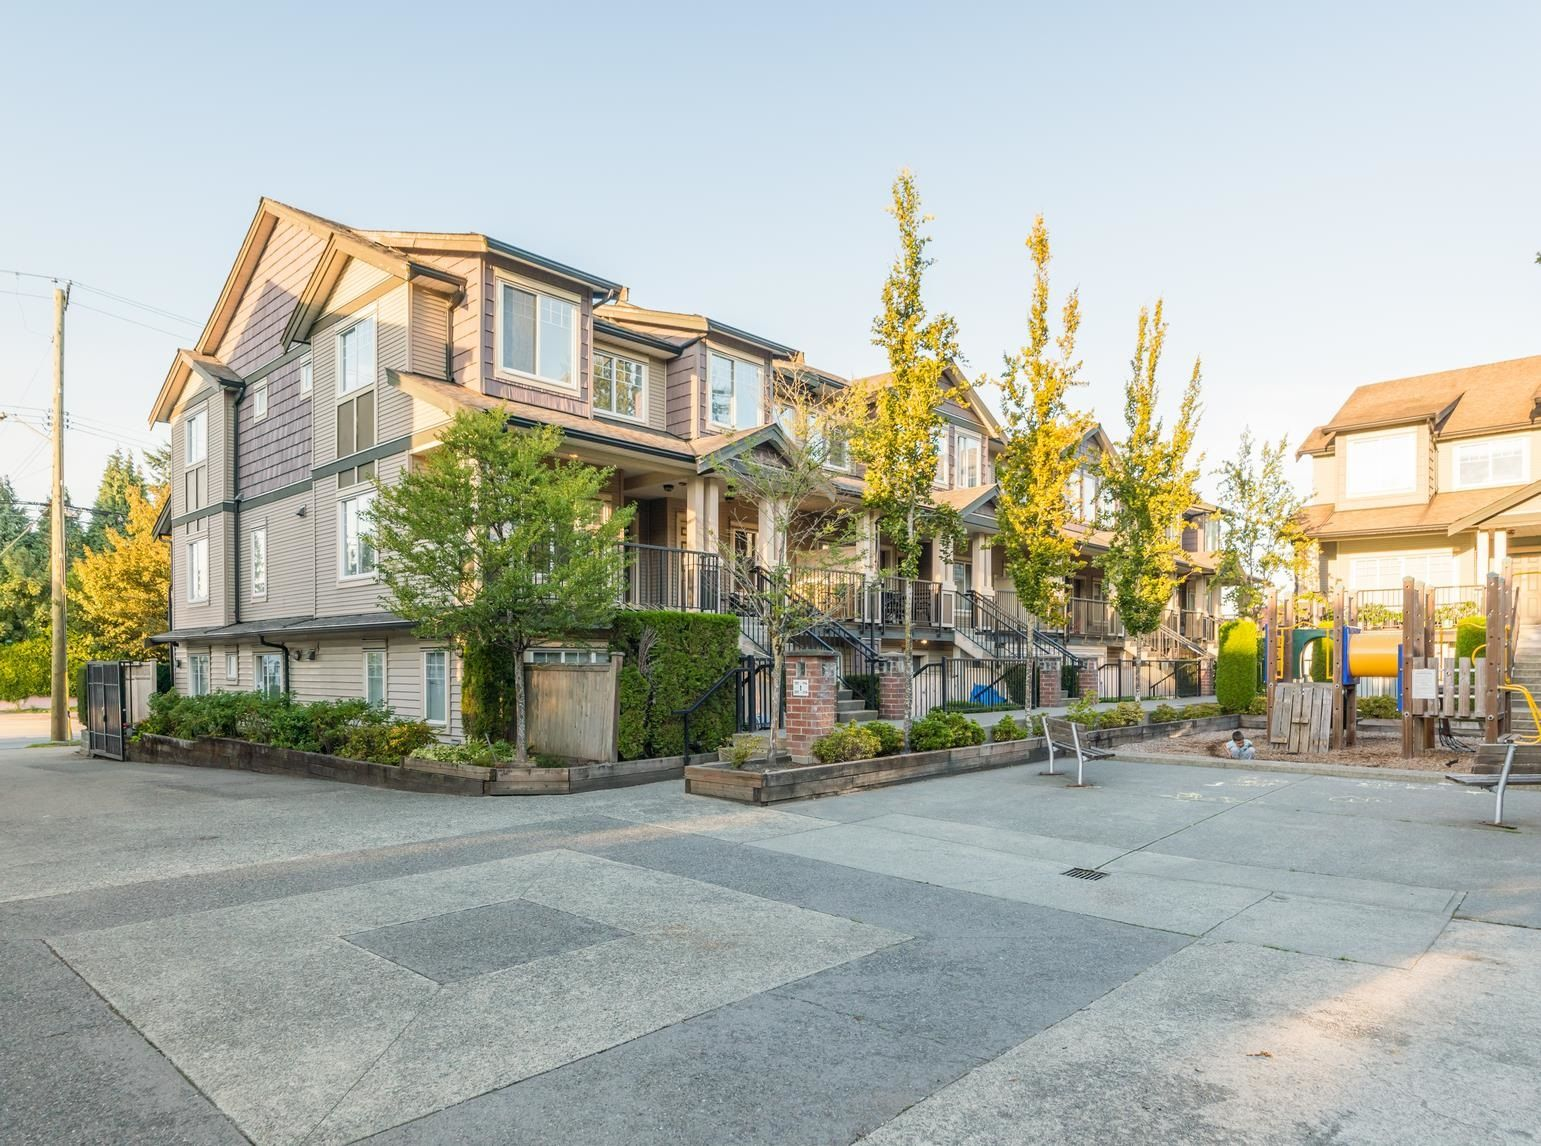 """Main Photo: 121 13958 108 Avenue in Surrey: Whalley Townhouse for sale in """"AURA 3"""" (North Surrey)  : MLS®# R2622284"""